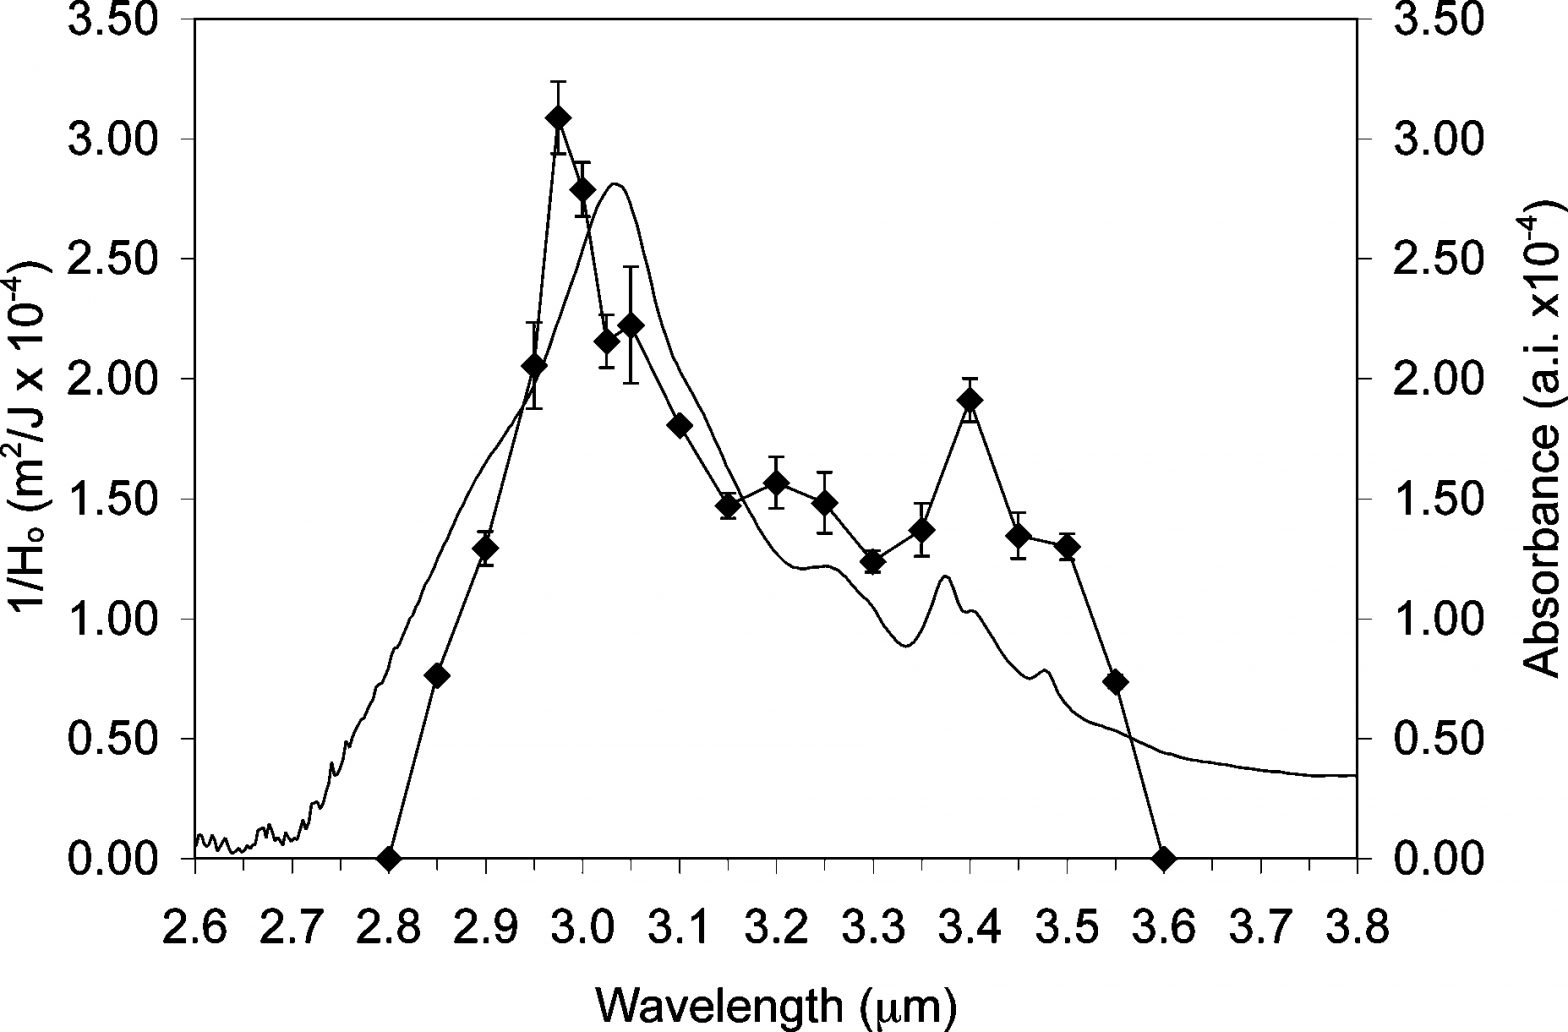 Inverse threshold fluence for insulin ion formation plotted as a function of wavelength